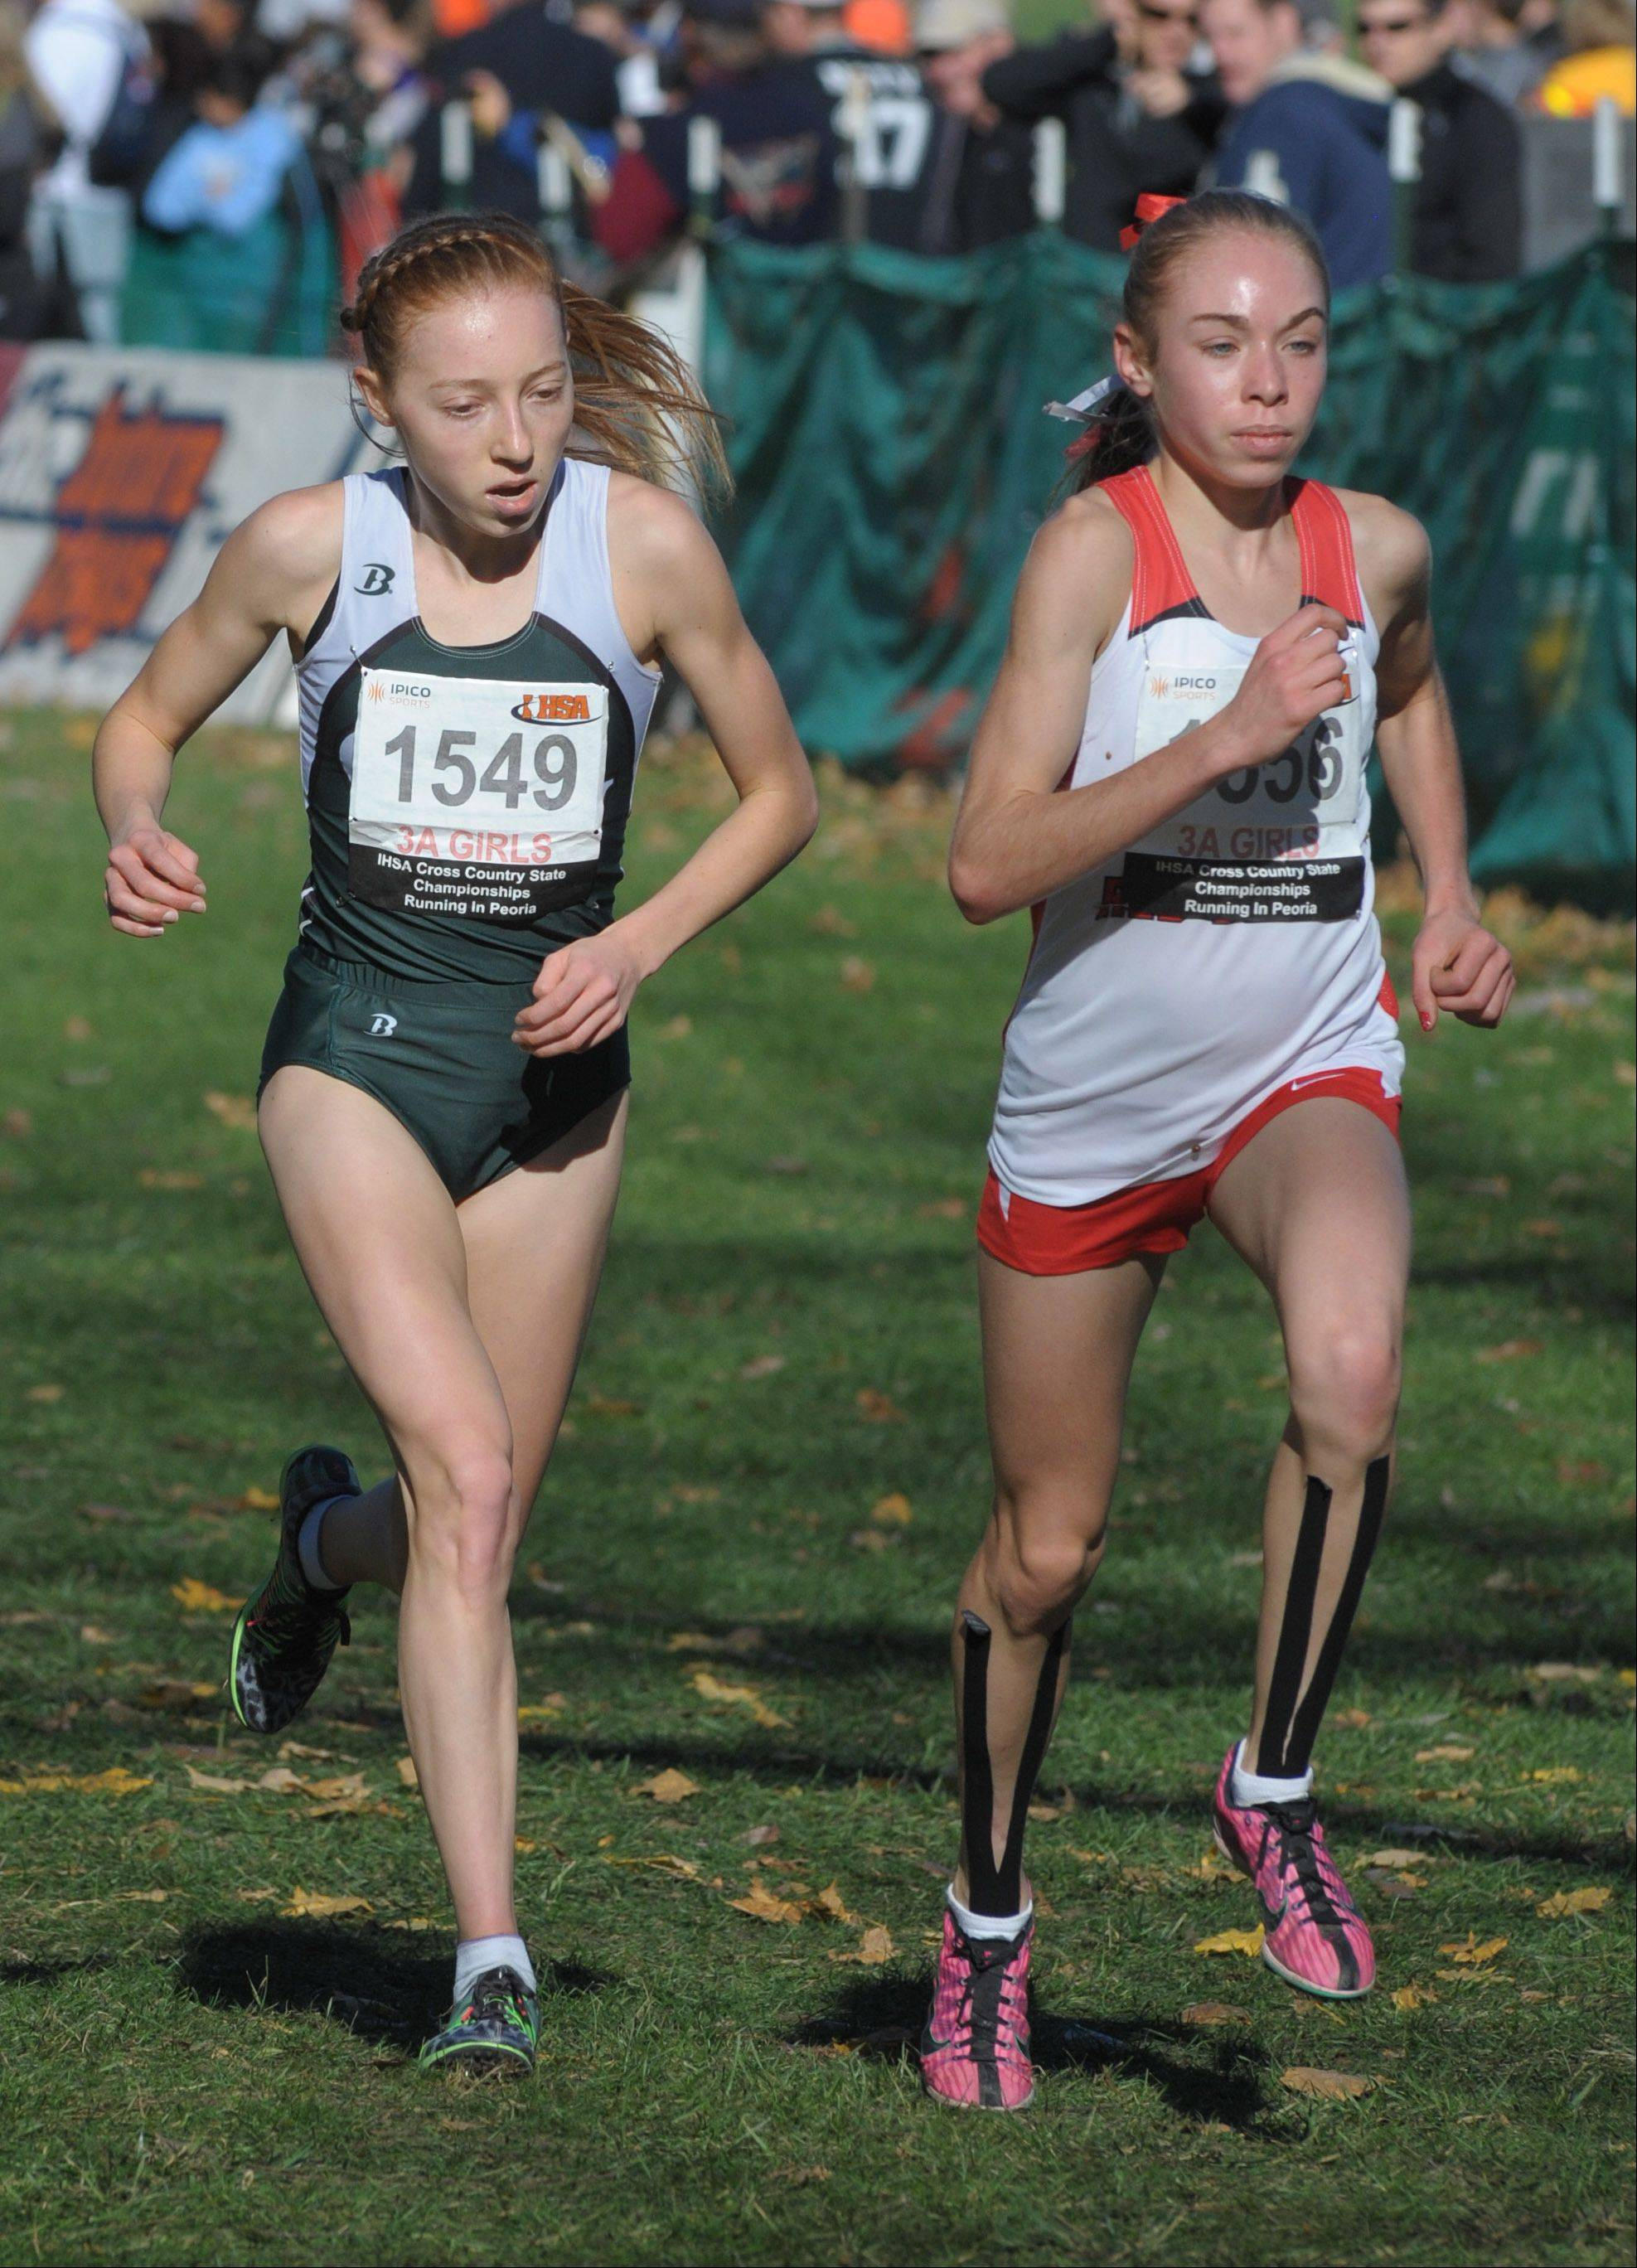 Glenbard West's Madeline Perez (1549) and Hinsdale Central's Alexa battle to the finish line of the Class 3A IHSA cross country state finals at Detweiller Park in Peoria on Saturday, November 9.